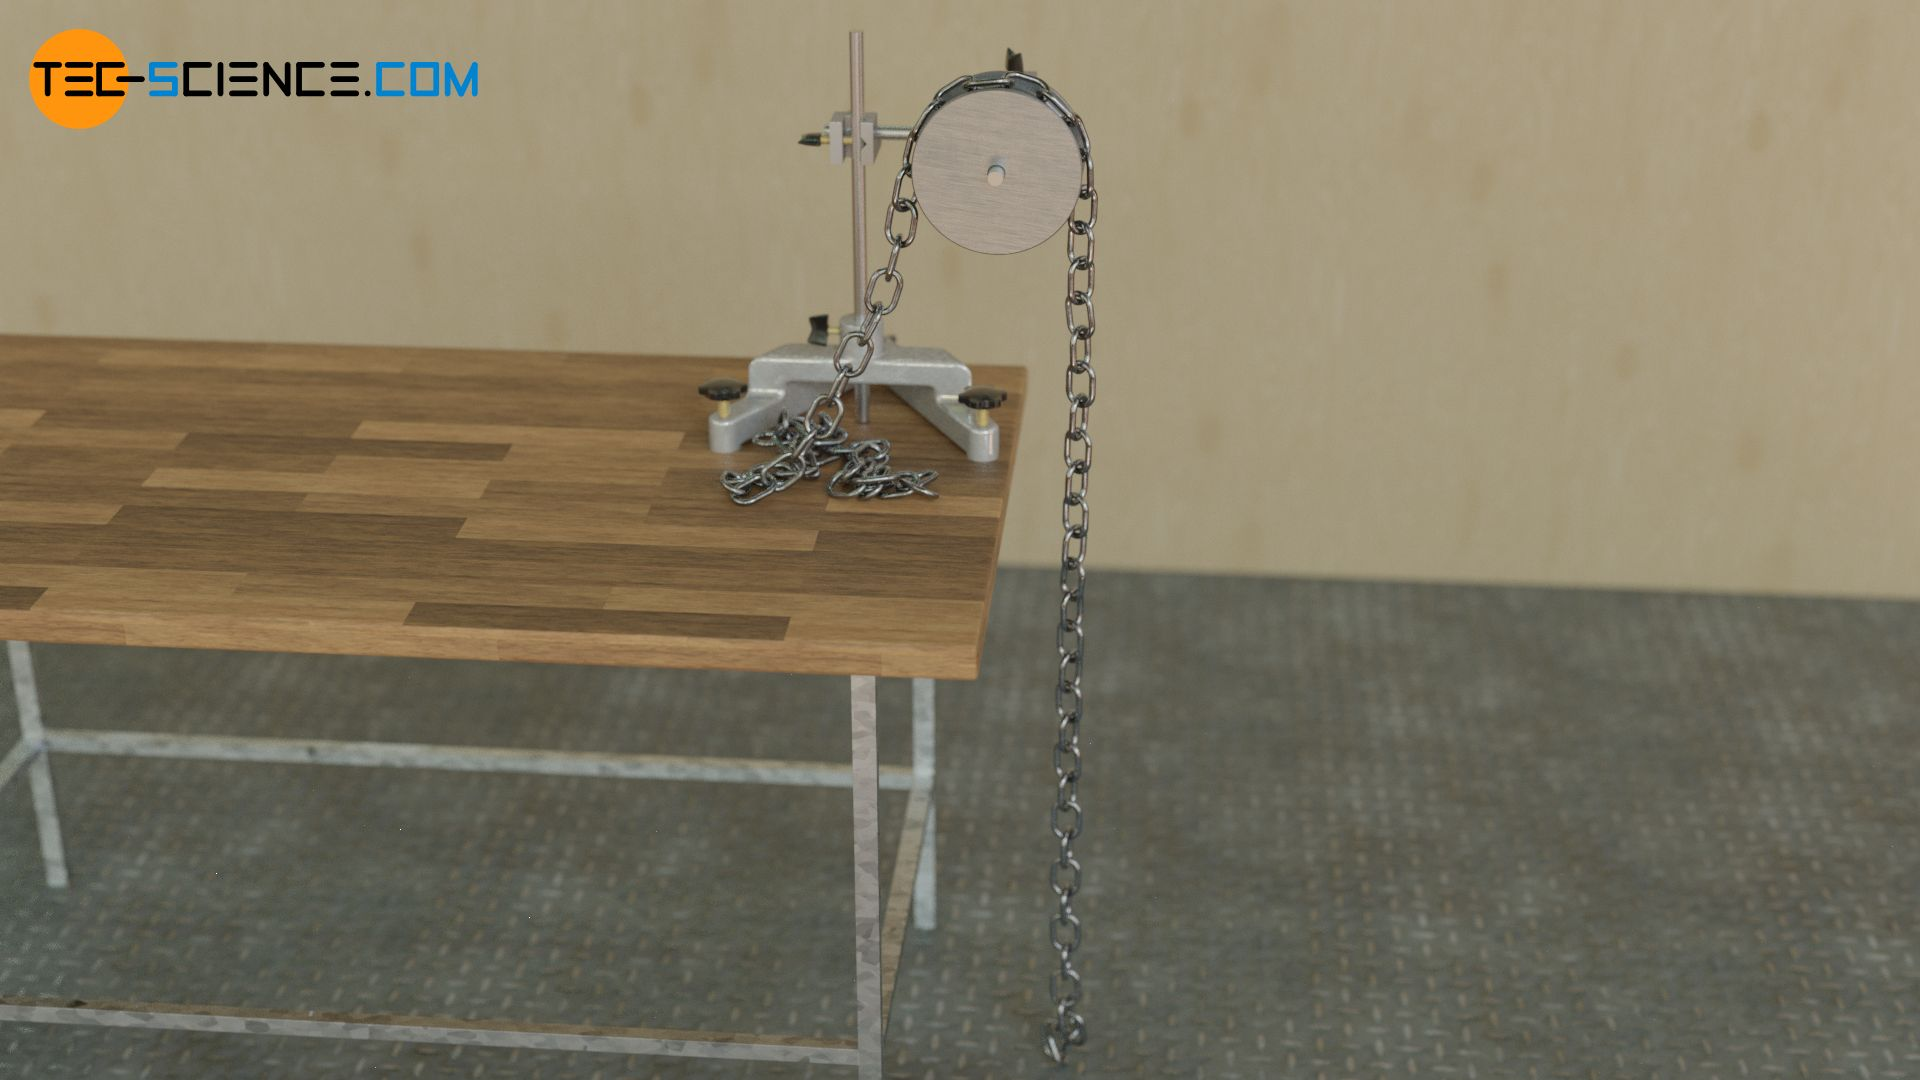 Rolling a chain over a pulley